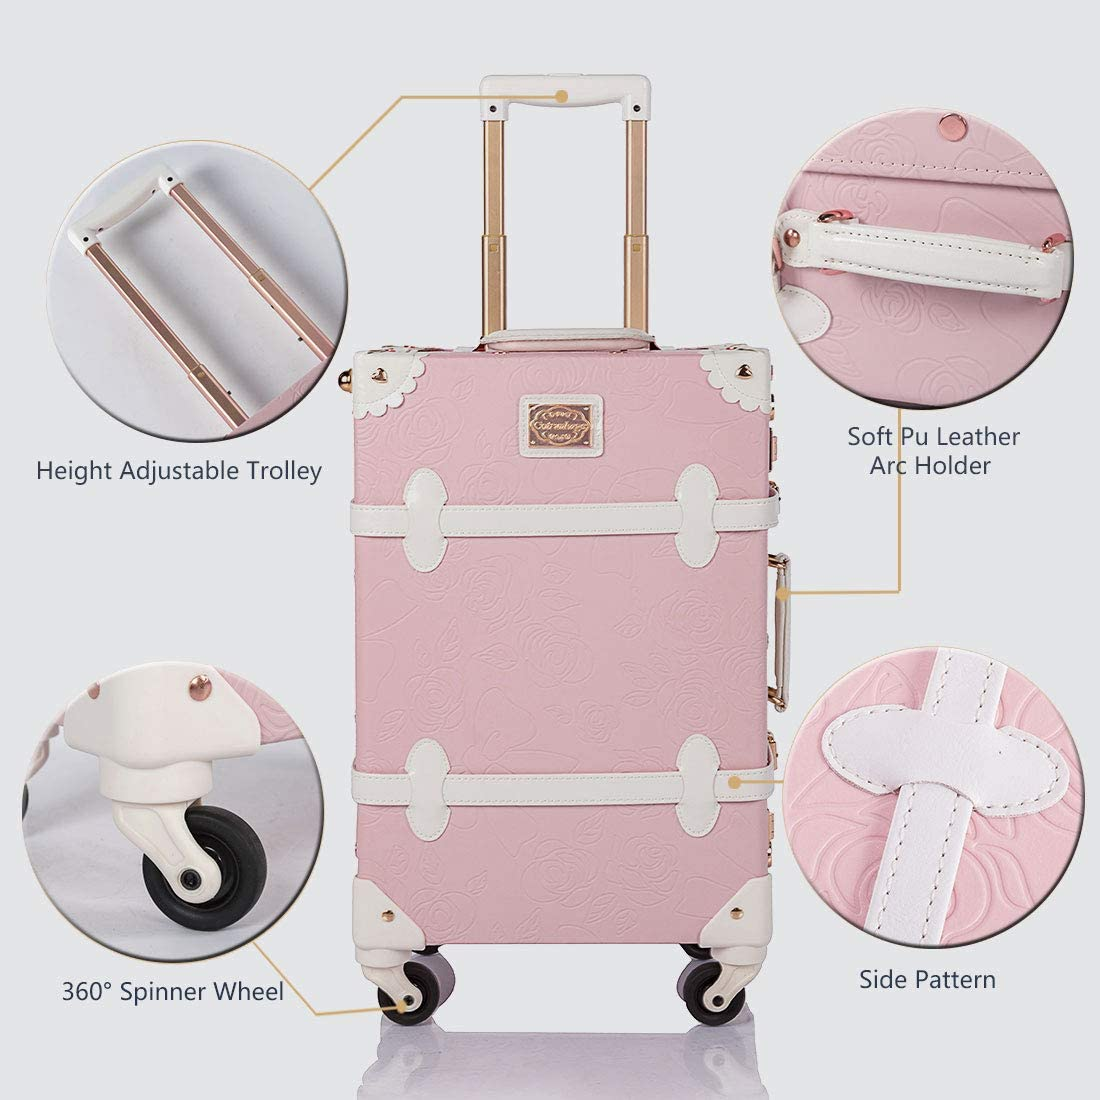 COTRUNKAGE Vintage Trunk 2 Piece Luggage Set TSA Lock Carry On Suitcase for Women with wheels Light Grey